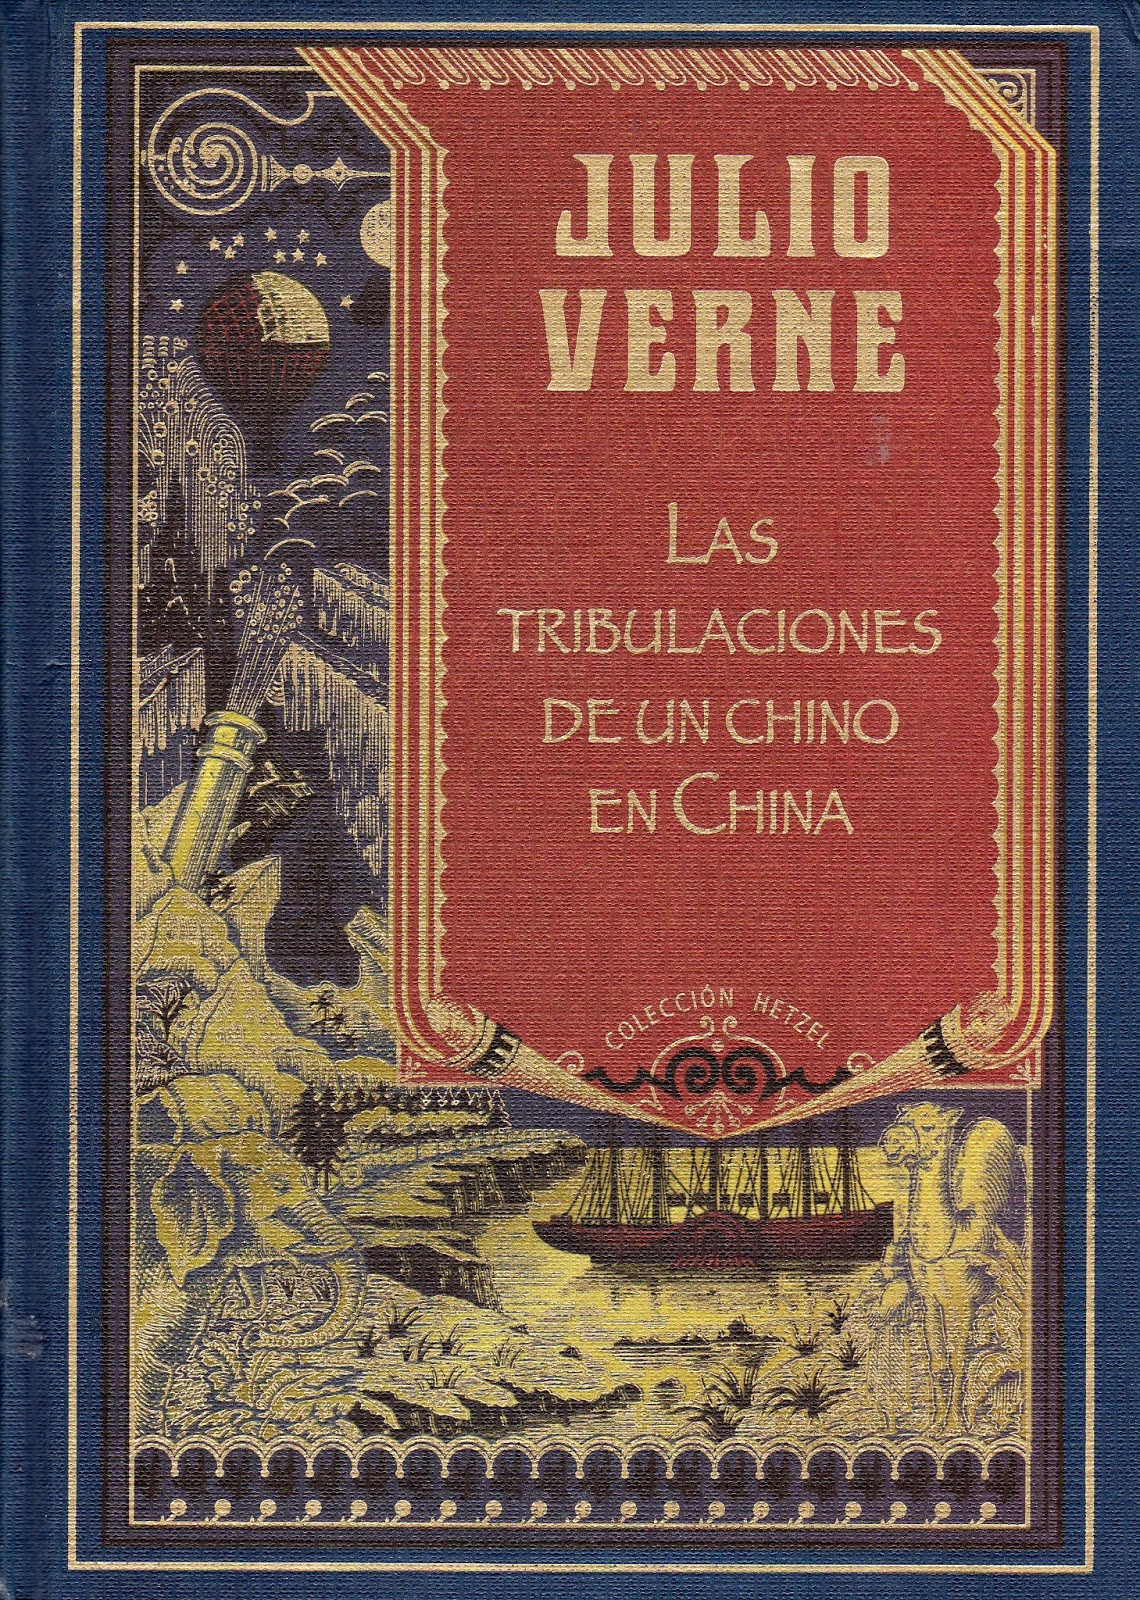 Libro Electronico Chino Jules Verne 31 03 13 7 04 13